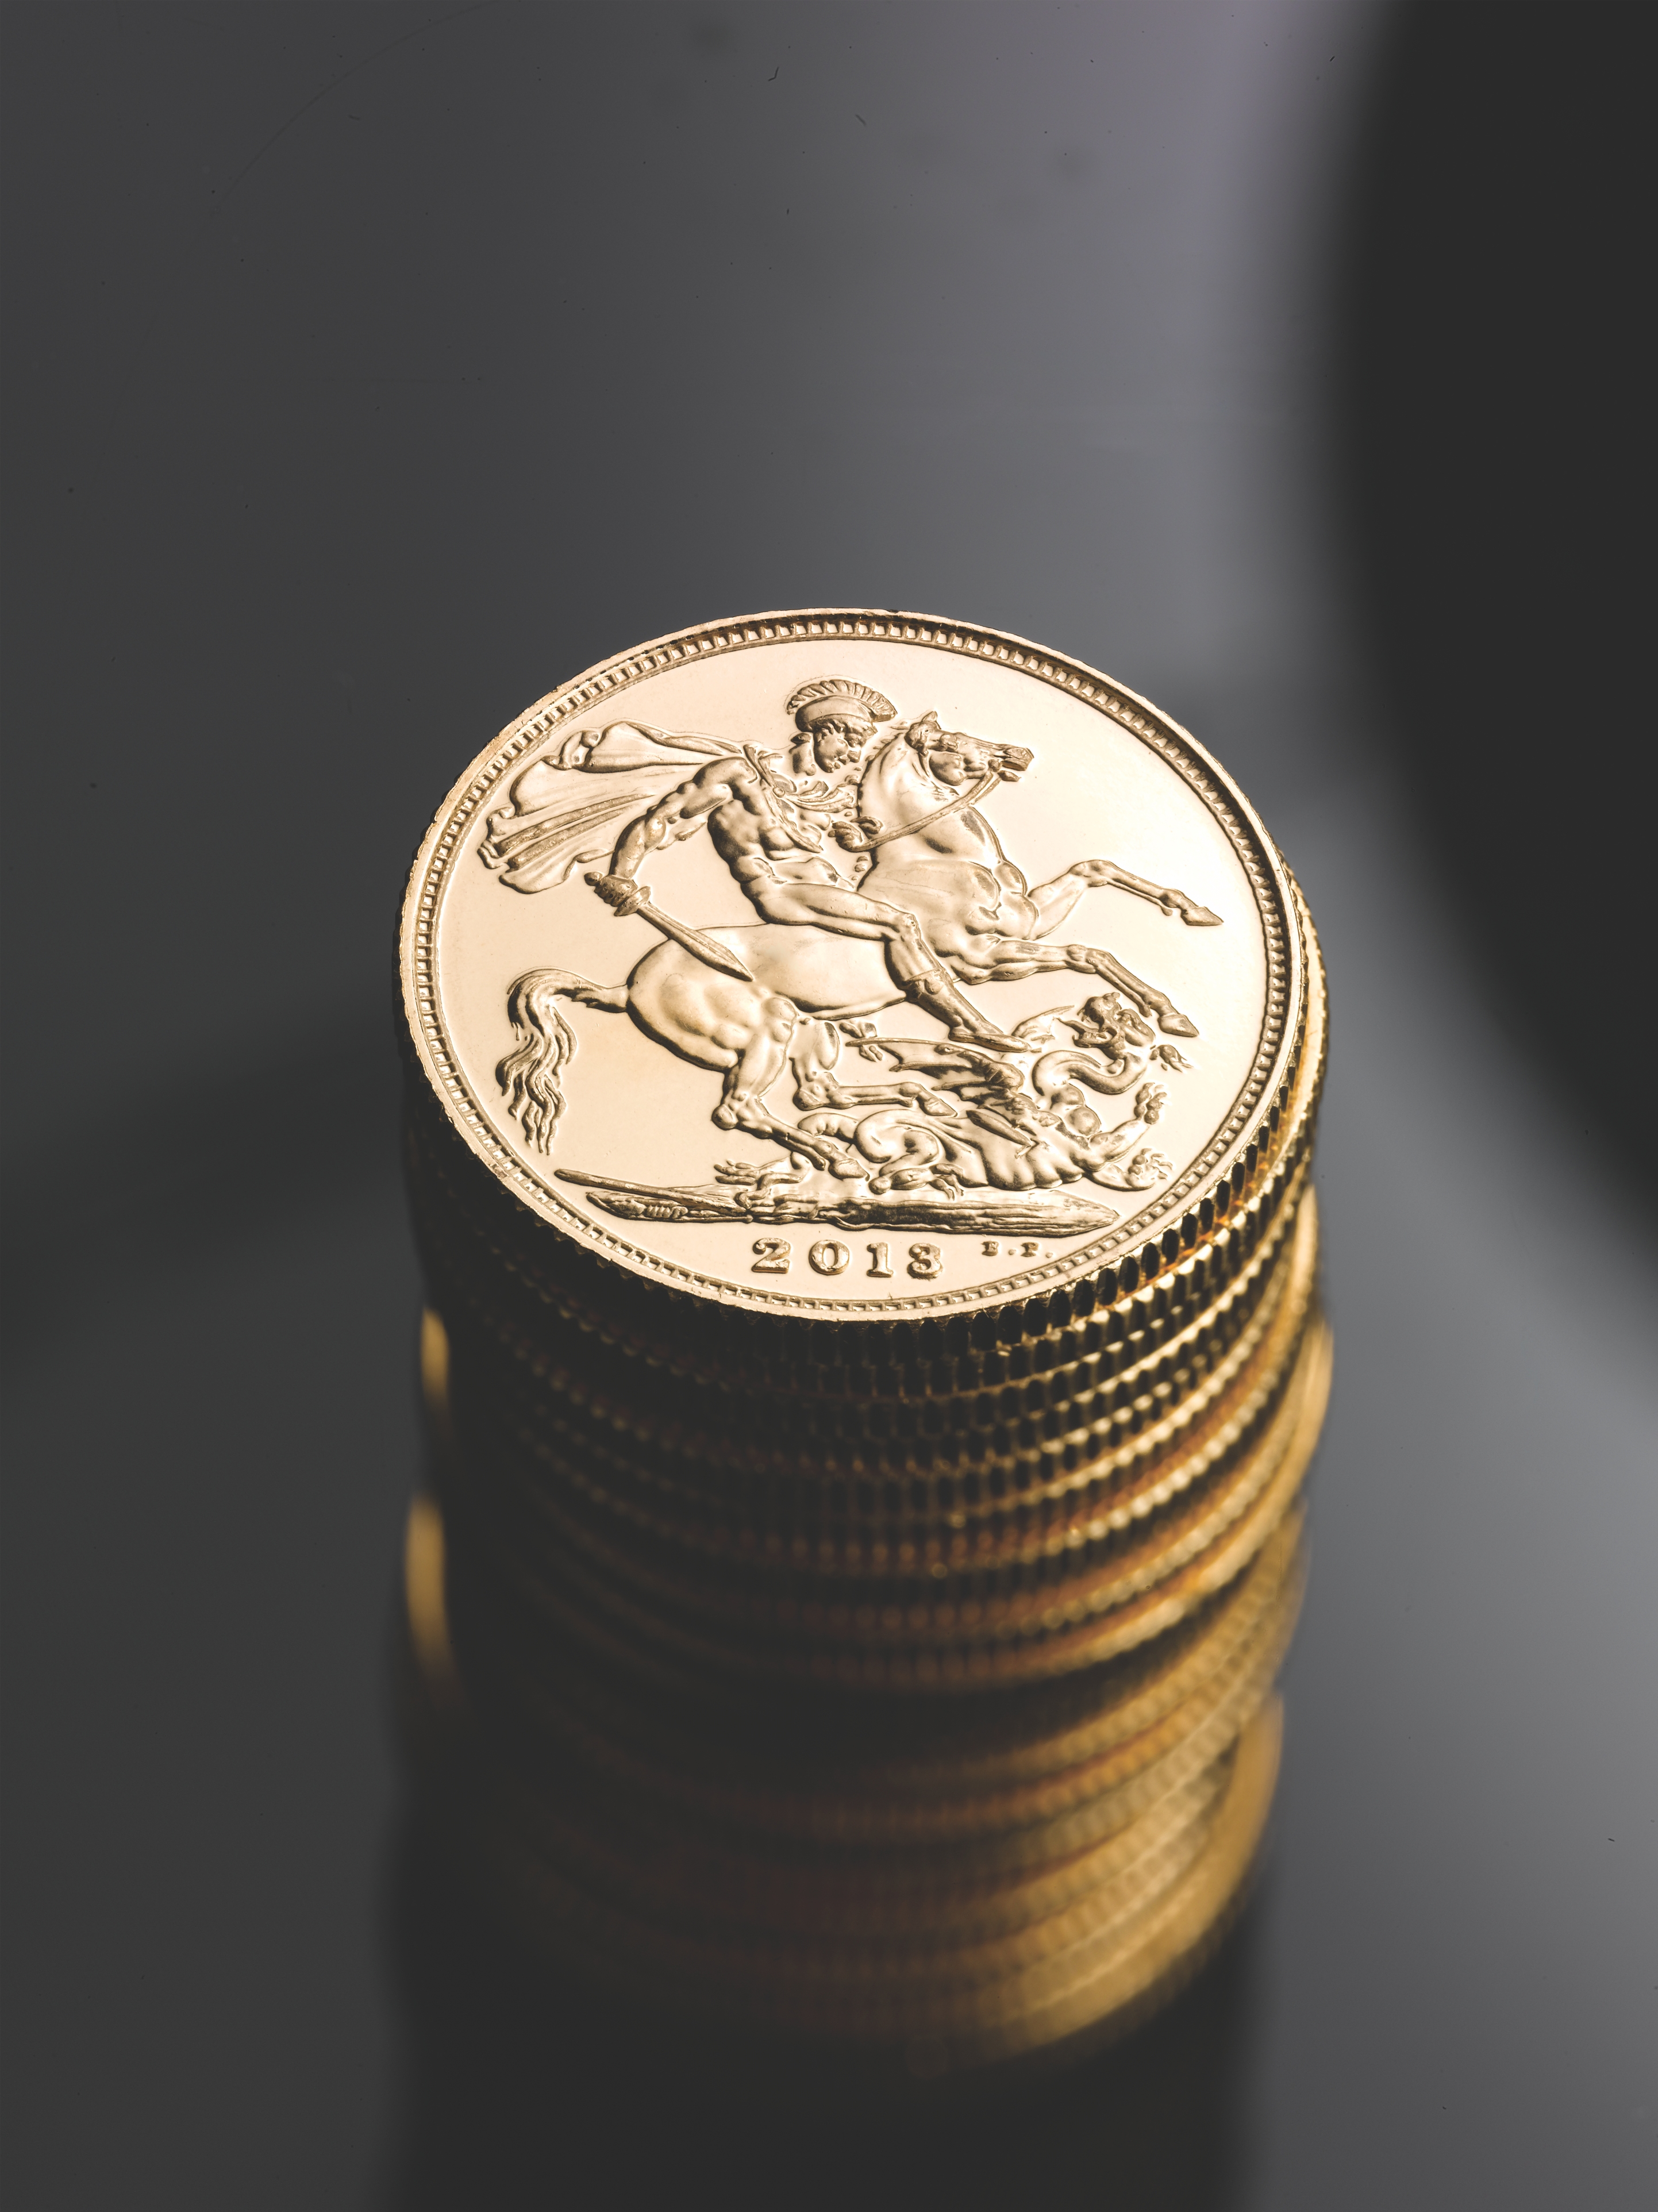 British Gold Sovereign Coins Stacked